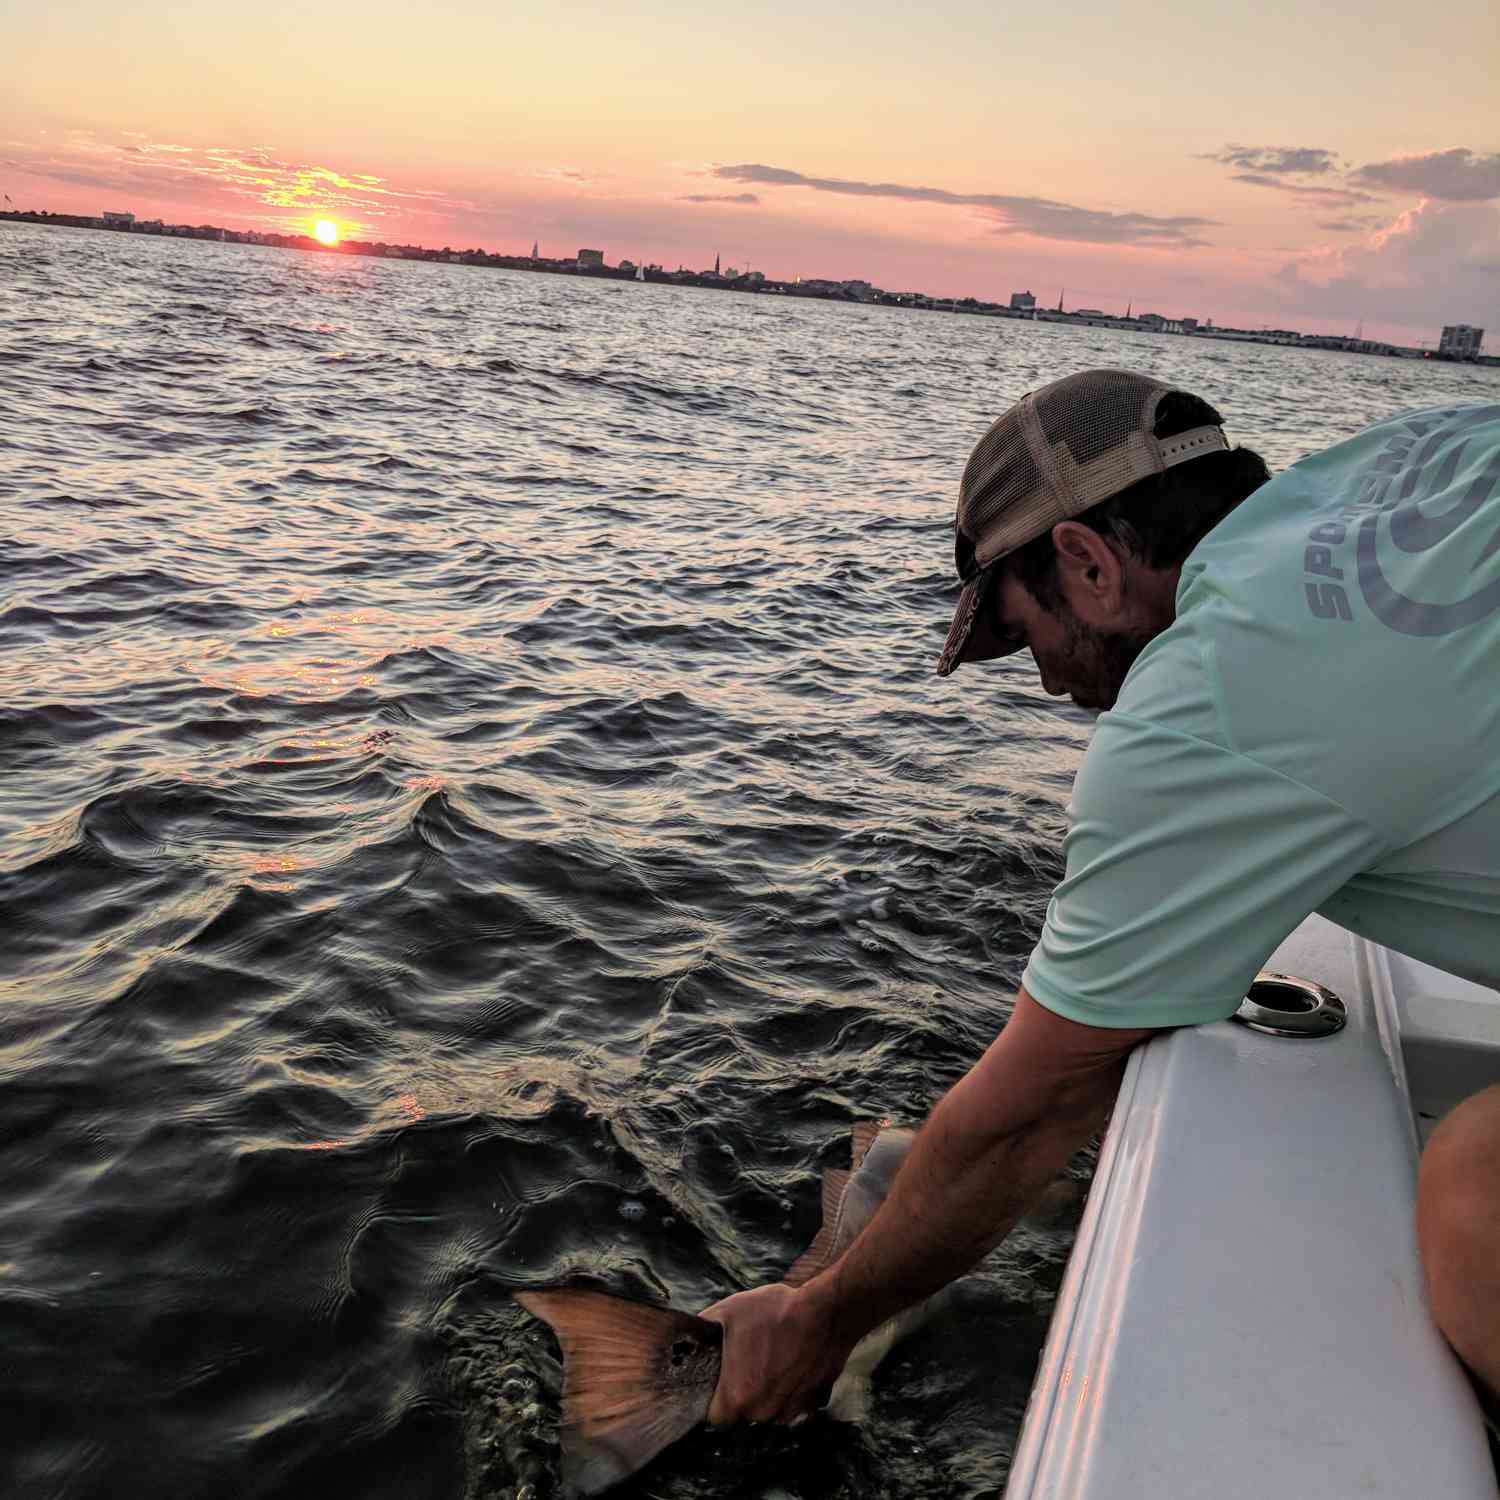 Title: Sunset Release - On board their Sportsman Masters 207 Bay Boat - Location: Charleston, SC. Participating in the Photo Contest #SportsmanOctober2018